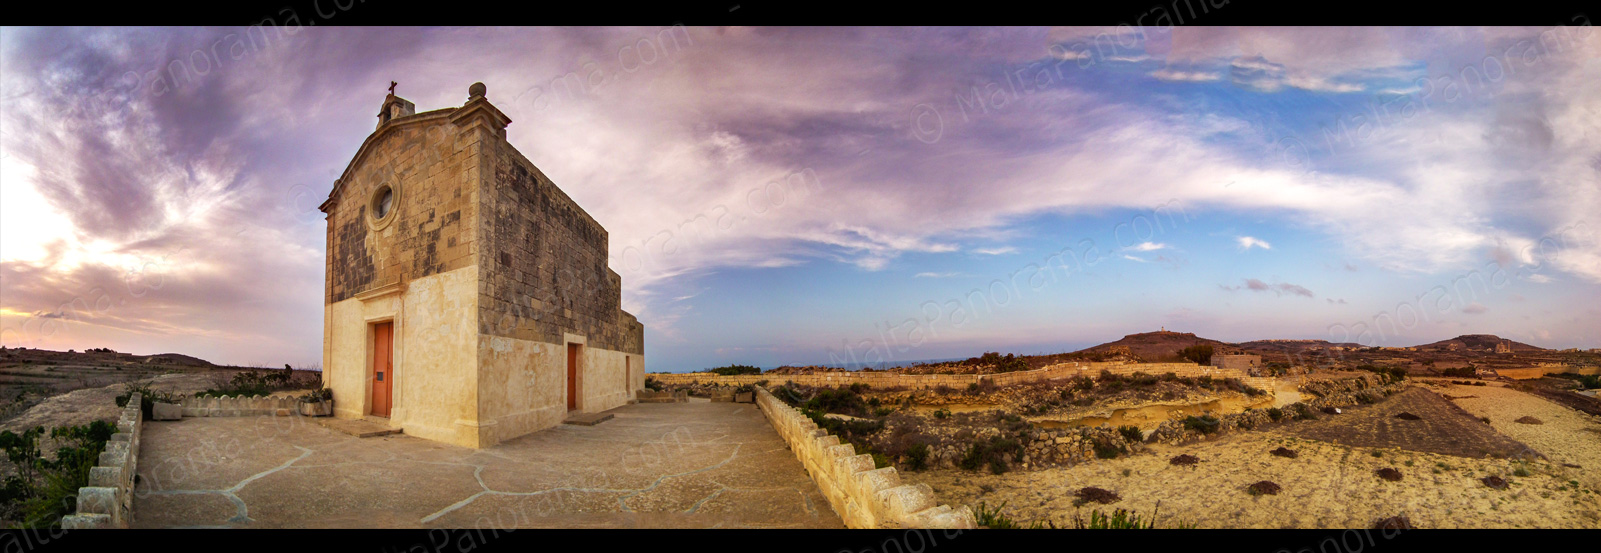 The Chapel of San Dimitri - Limits of Gharb, Gozo.